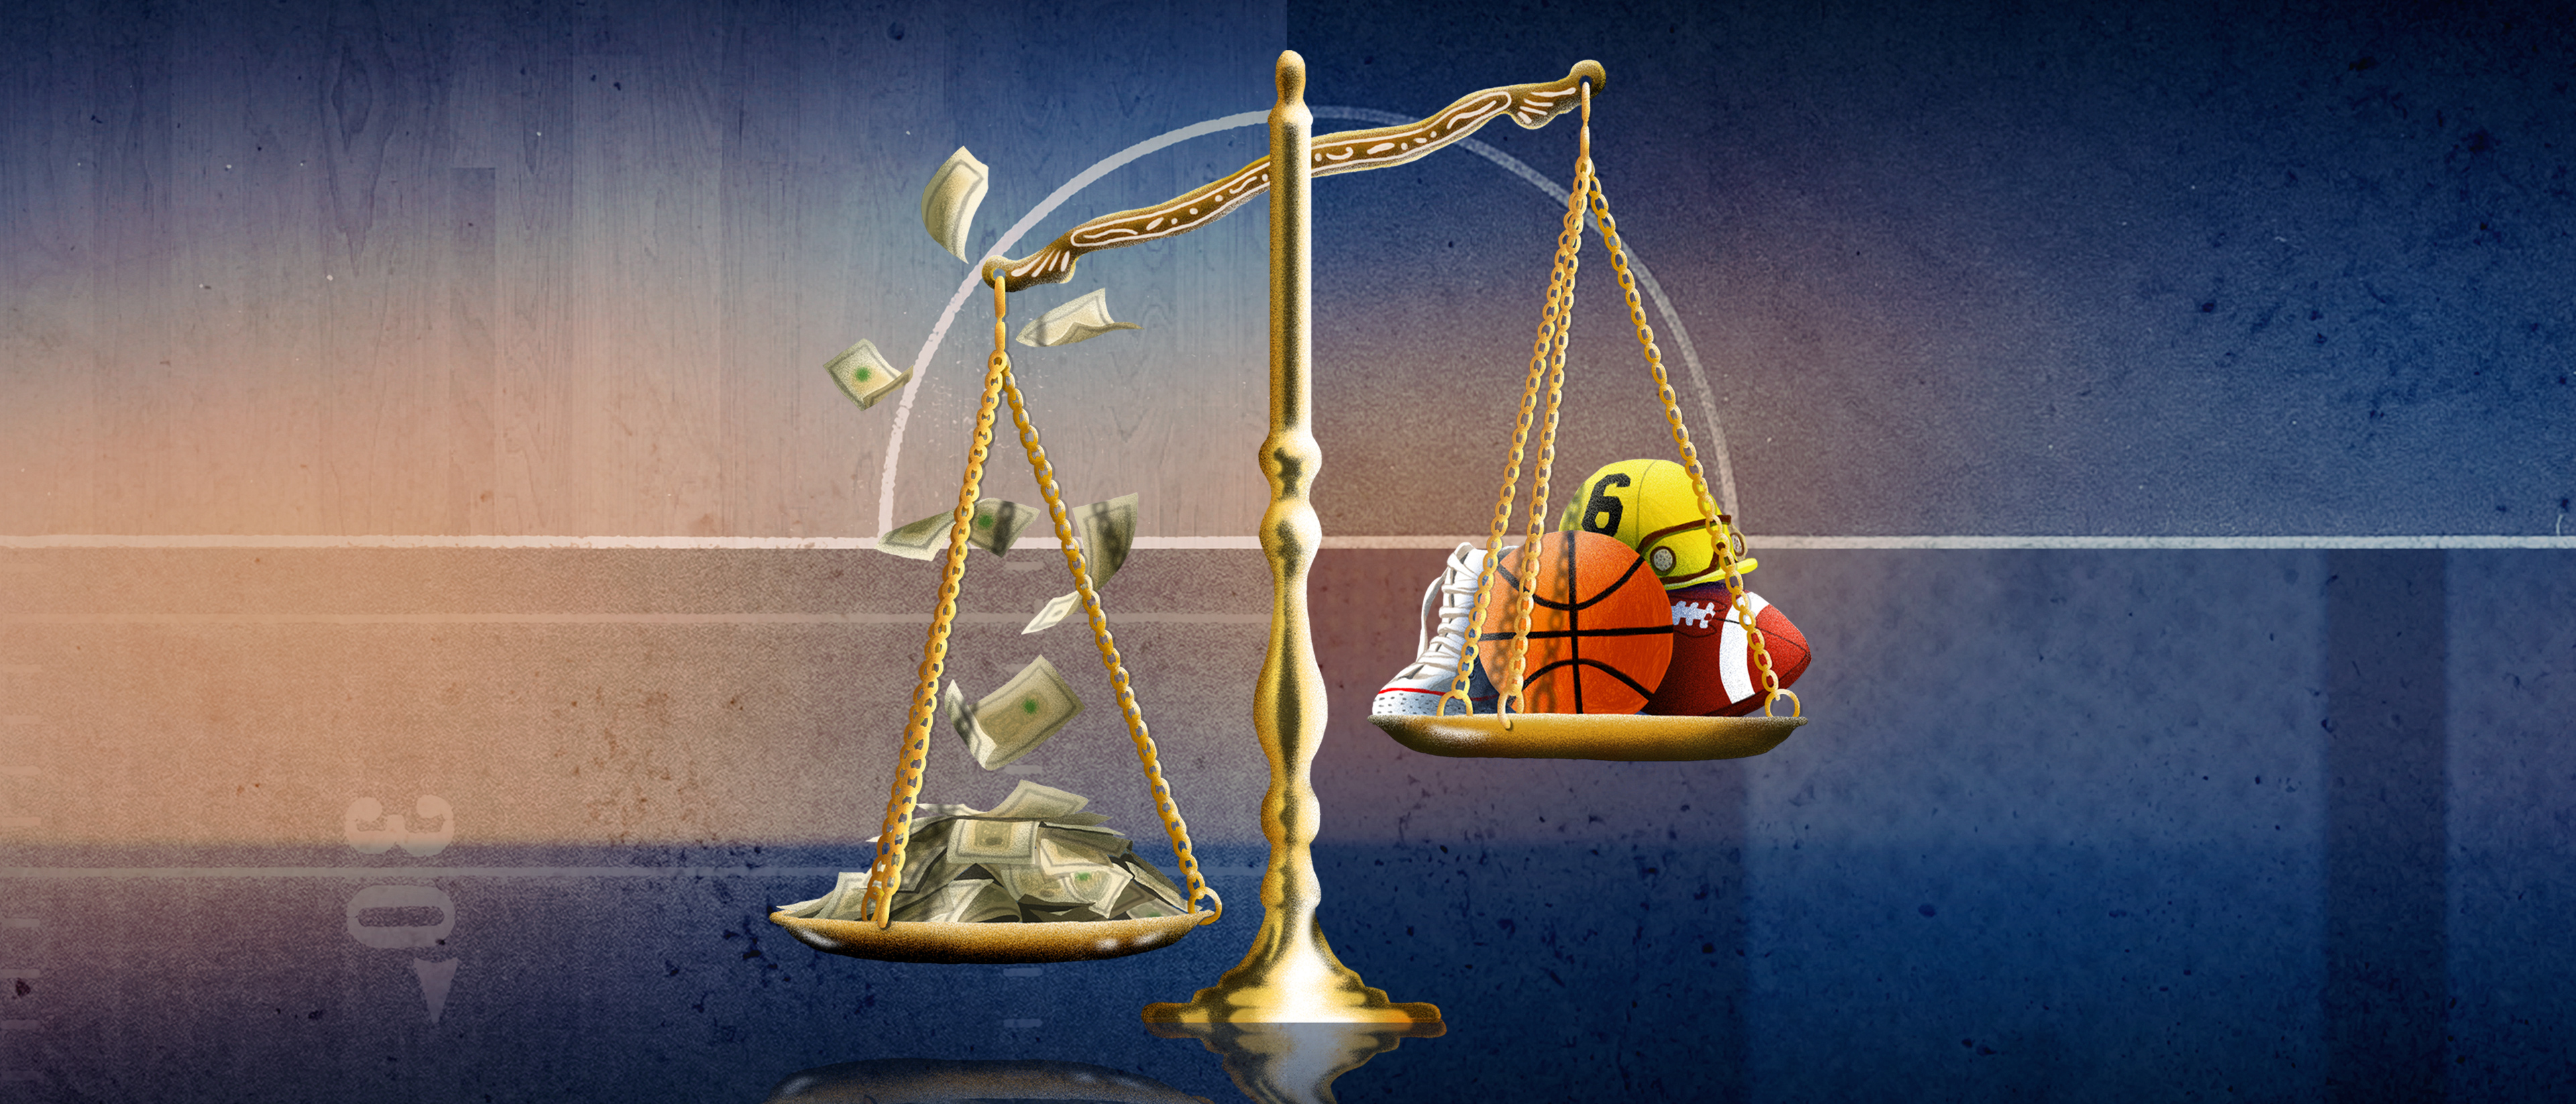 An illustration of scales of justice holding sports items like basketballs.